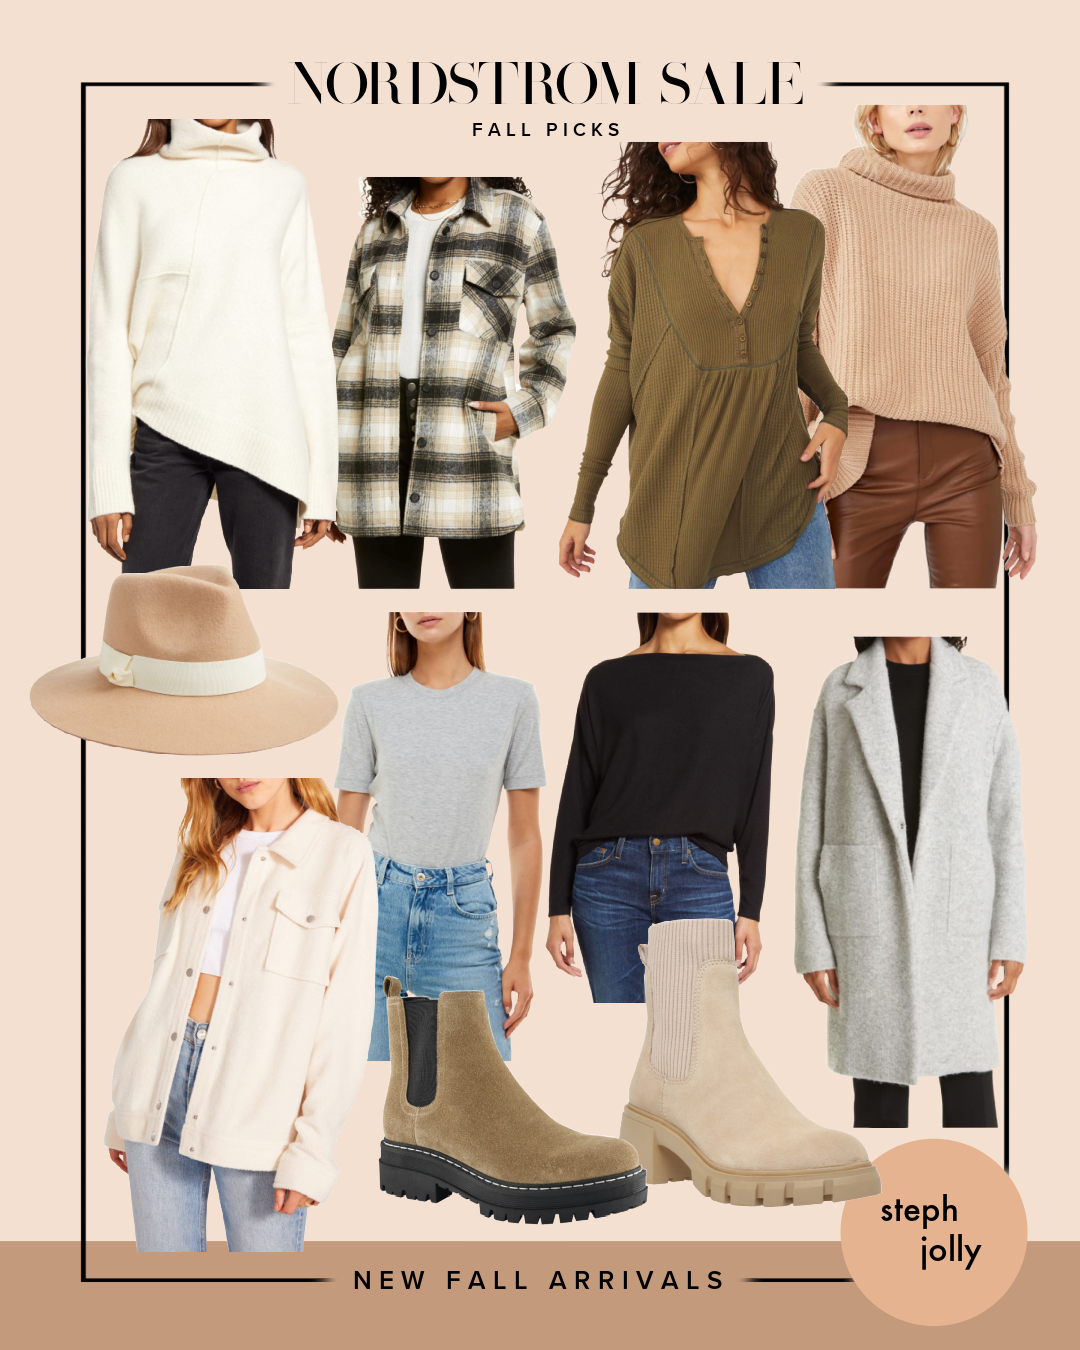 NORDSTROM-SALE-FALL